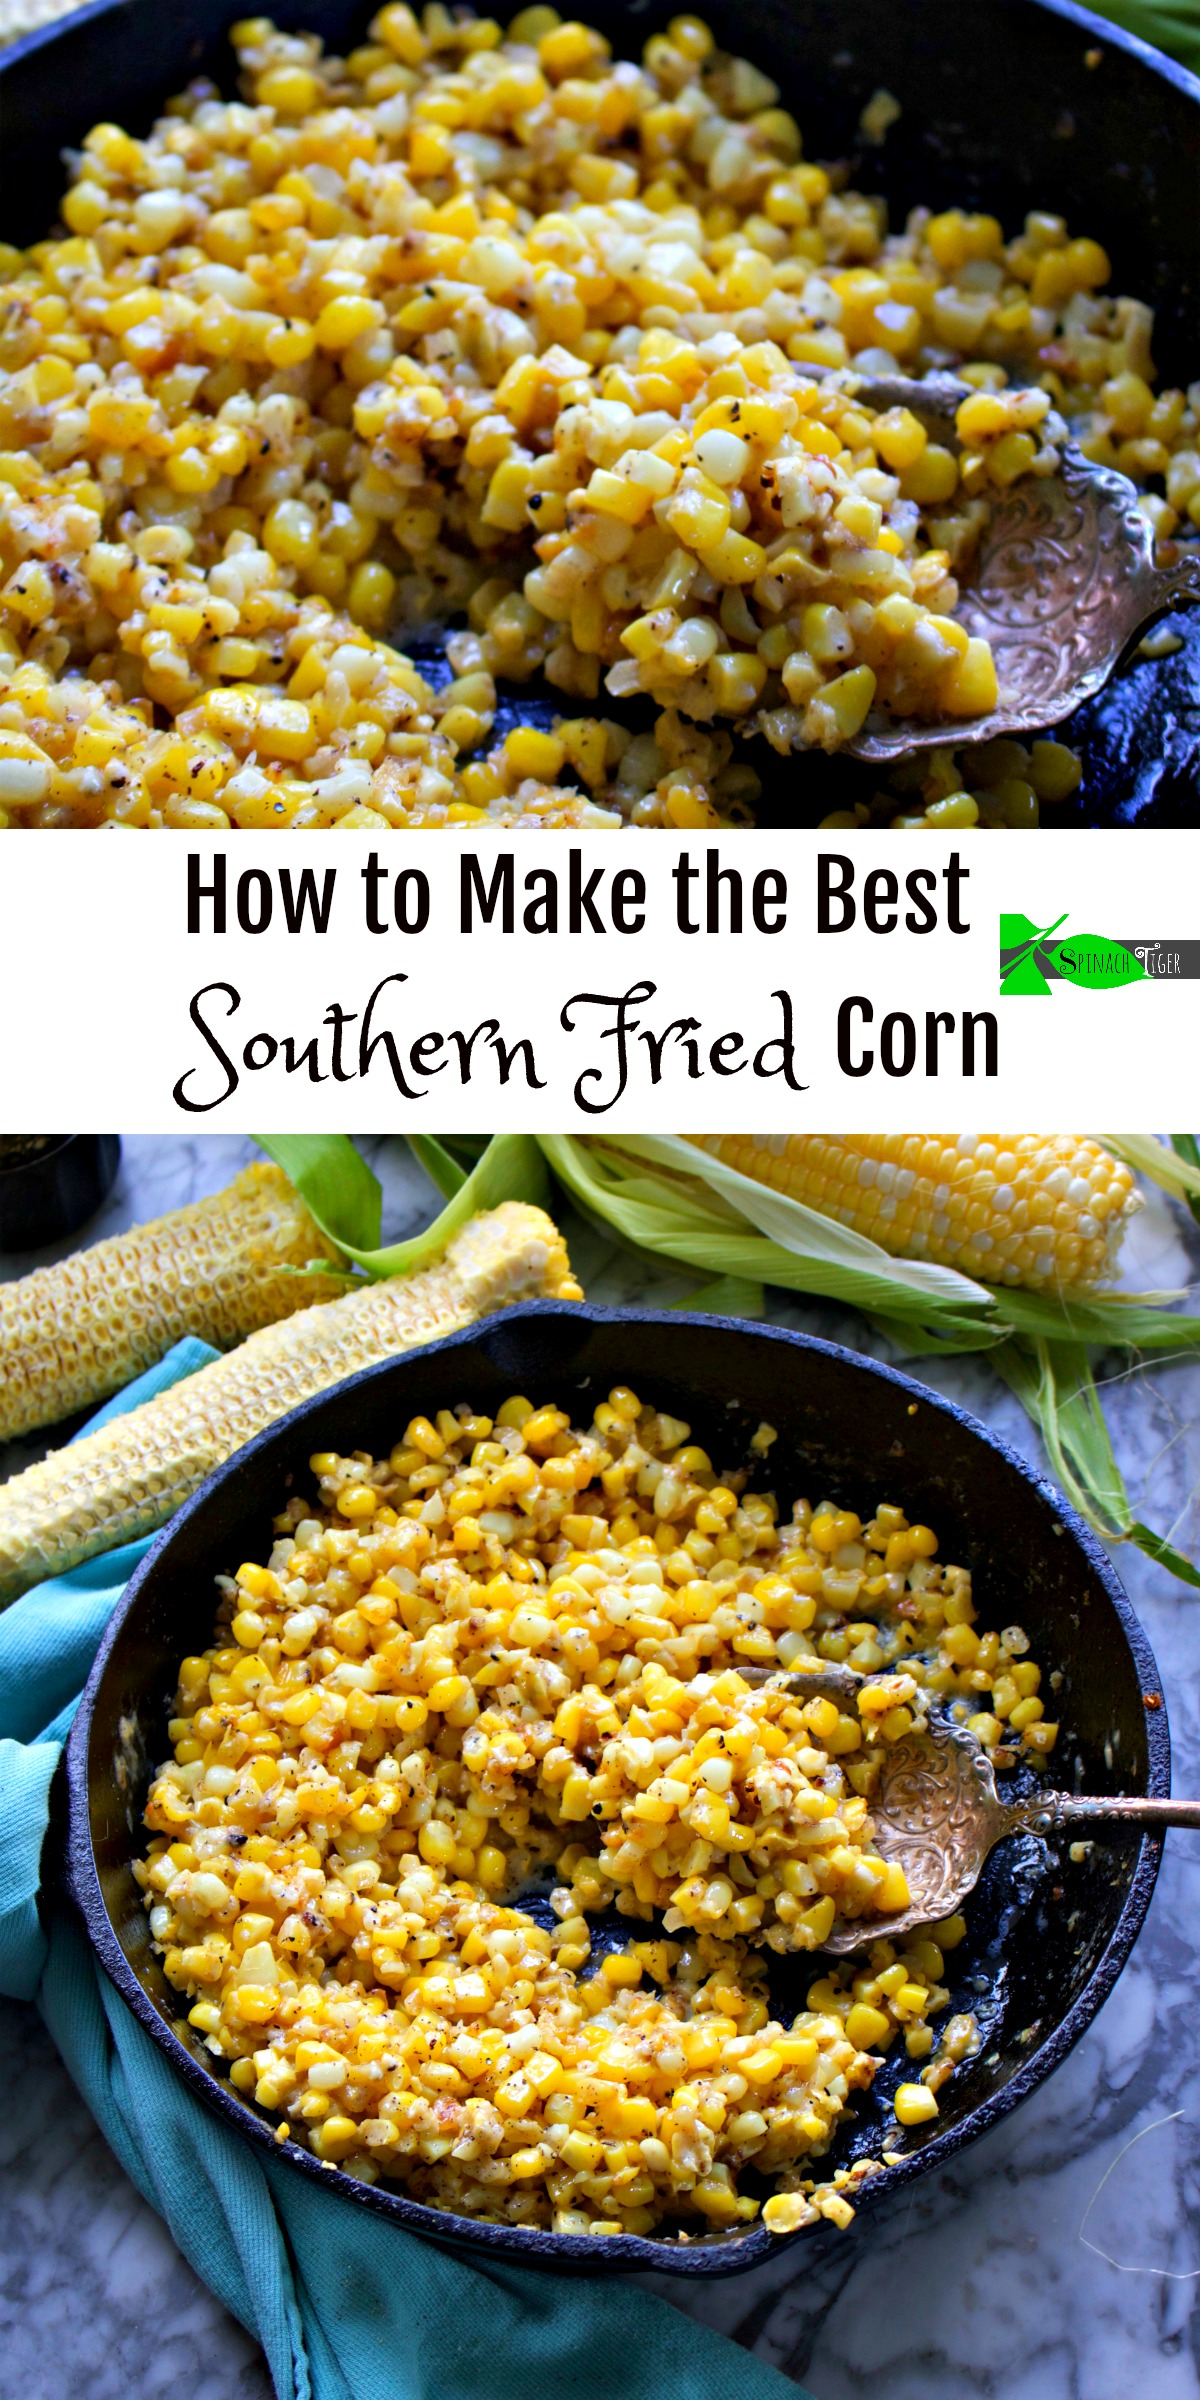 How to Make the Best Southern Fried Corn from Spinach Tiger